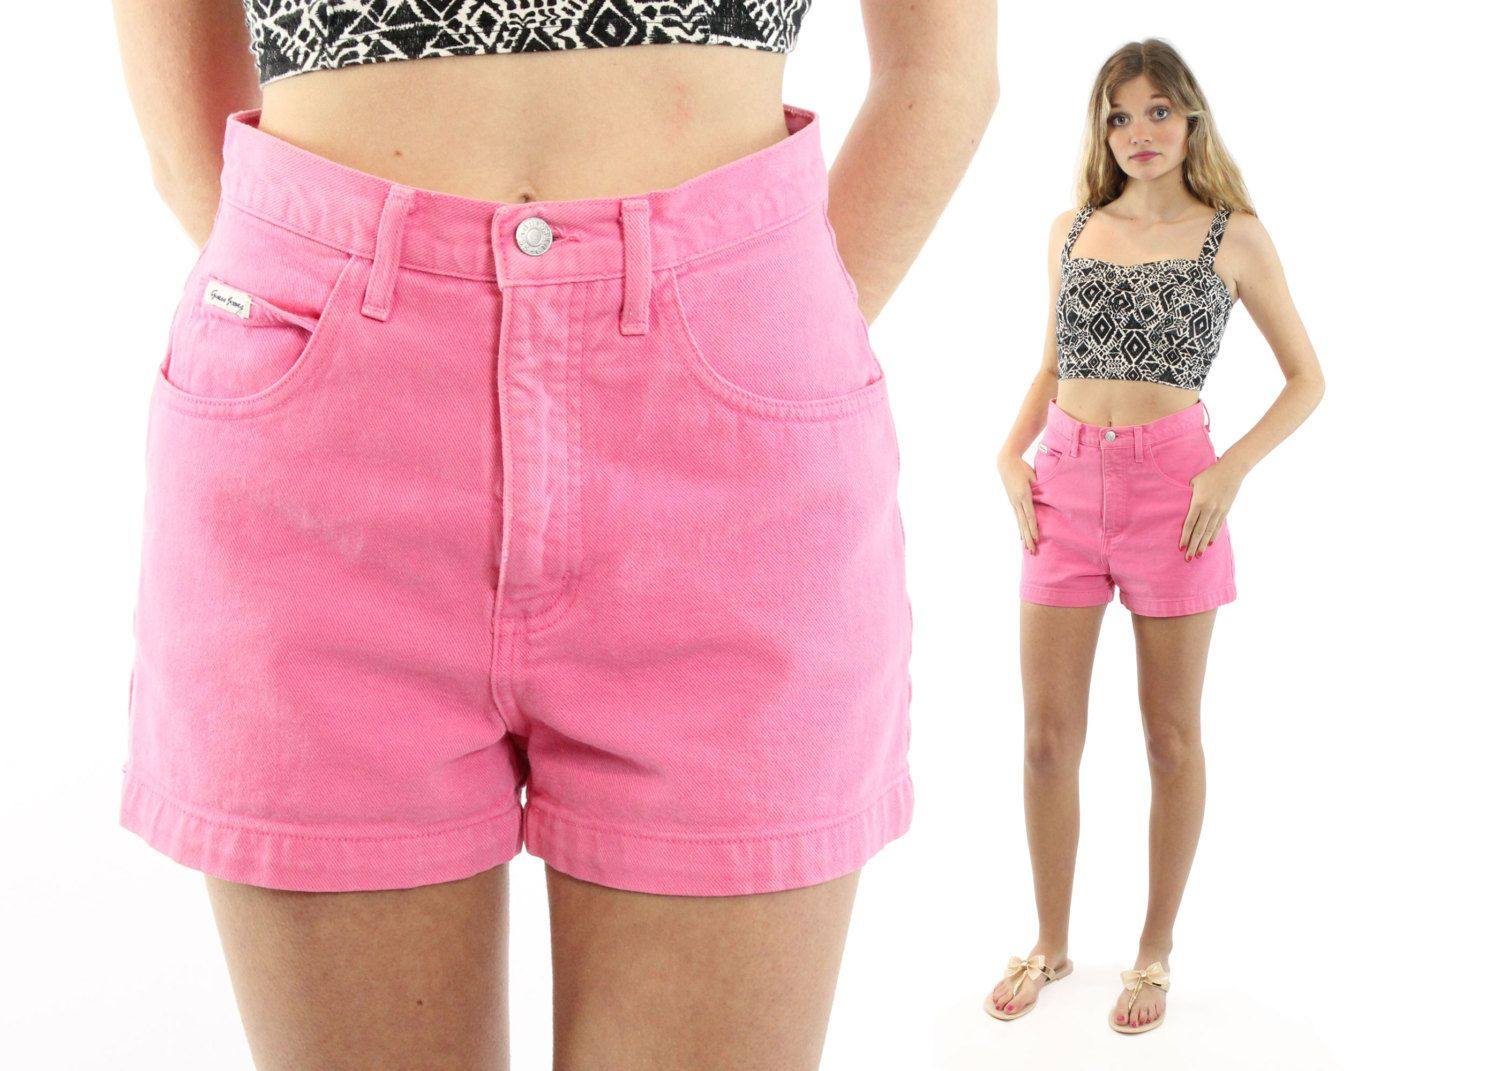 GUESS 90s Floral Skinny Shorts Petite Bottoms  Vintage Hawaii Theme Holidays Resort Travel Yacht Shorts W 30 Small Semi